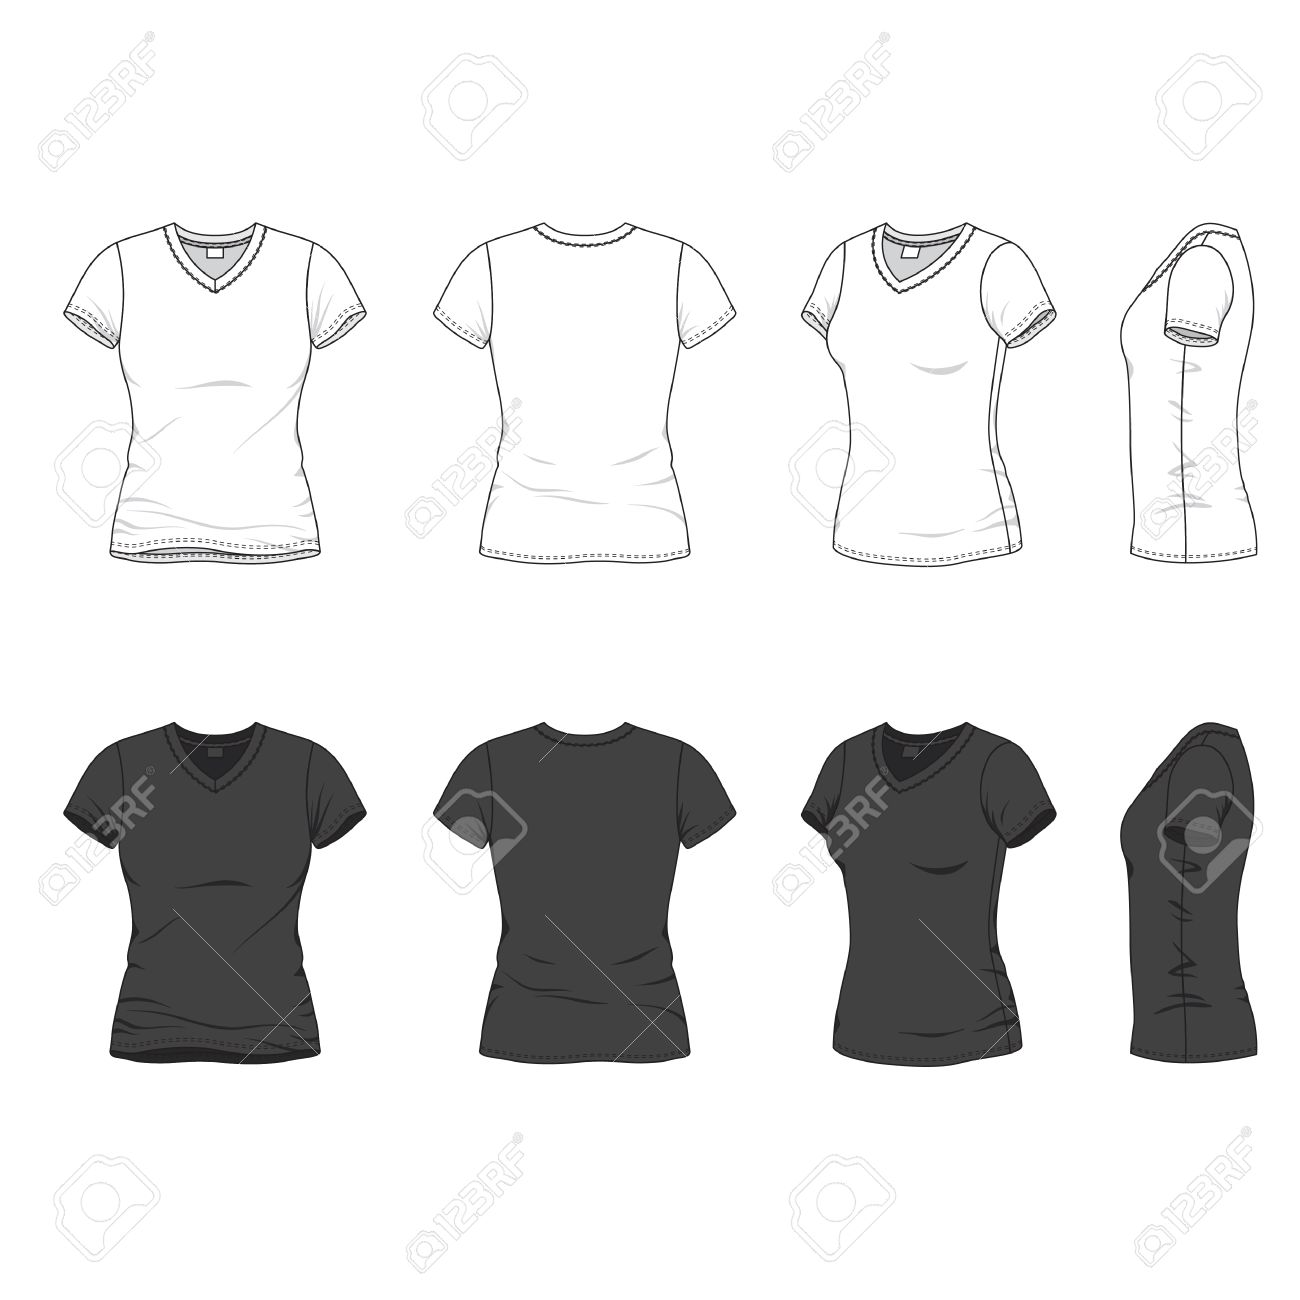 ec1cba7bcafe Vector illustration. Isolated on white. Front, back and side views of blank  women's v-neck t-shirt.